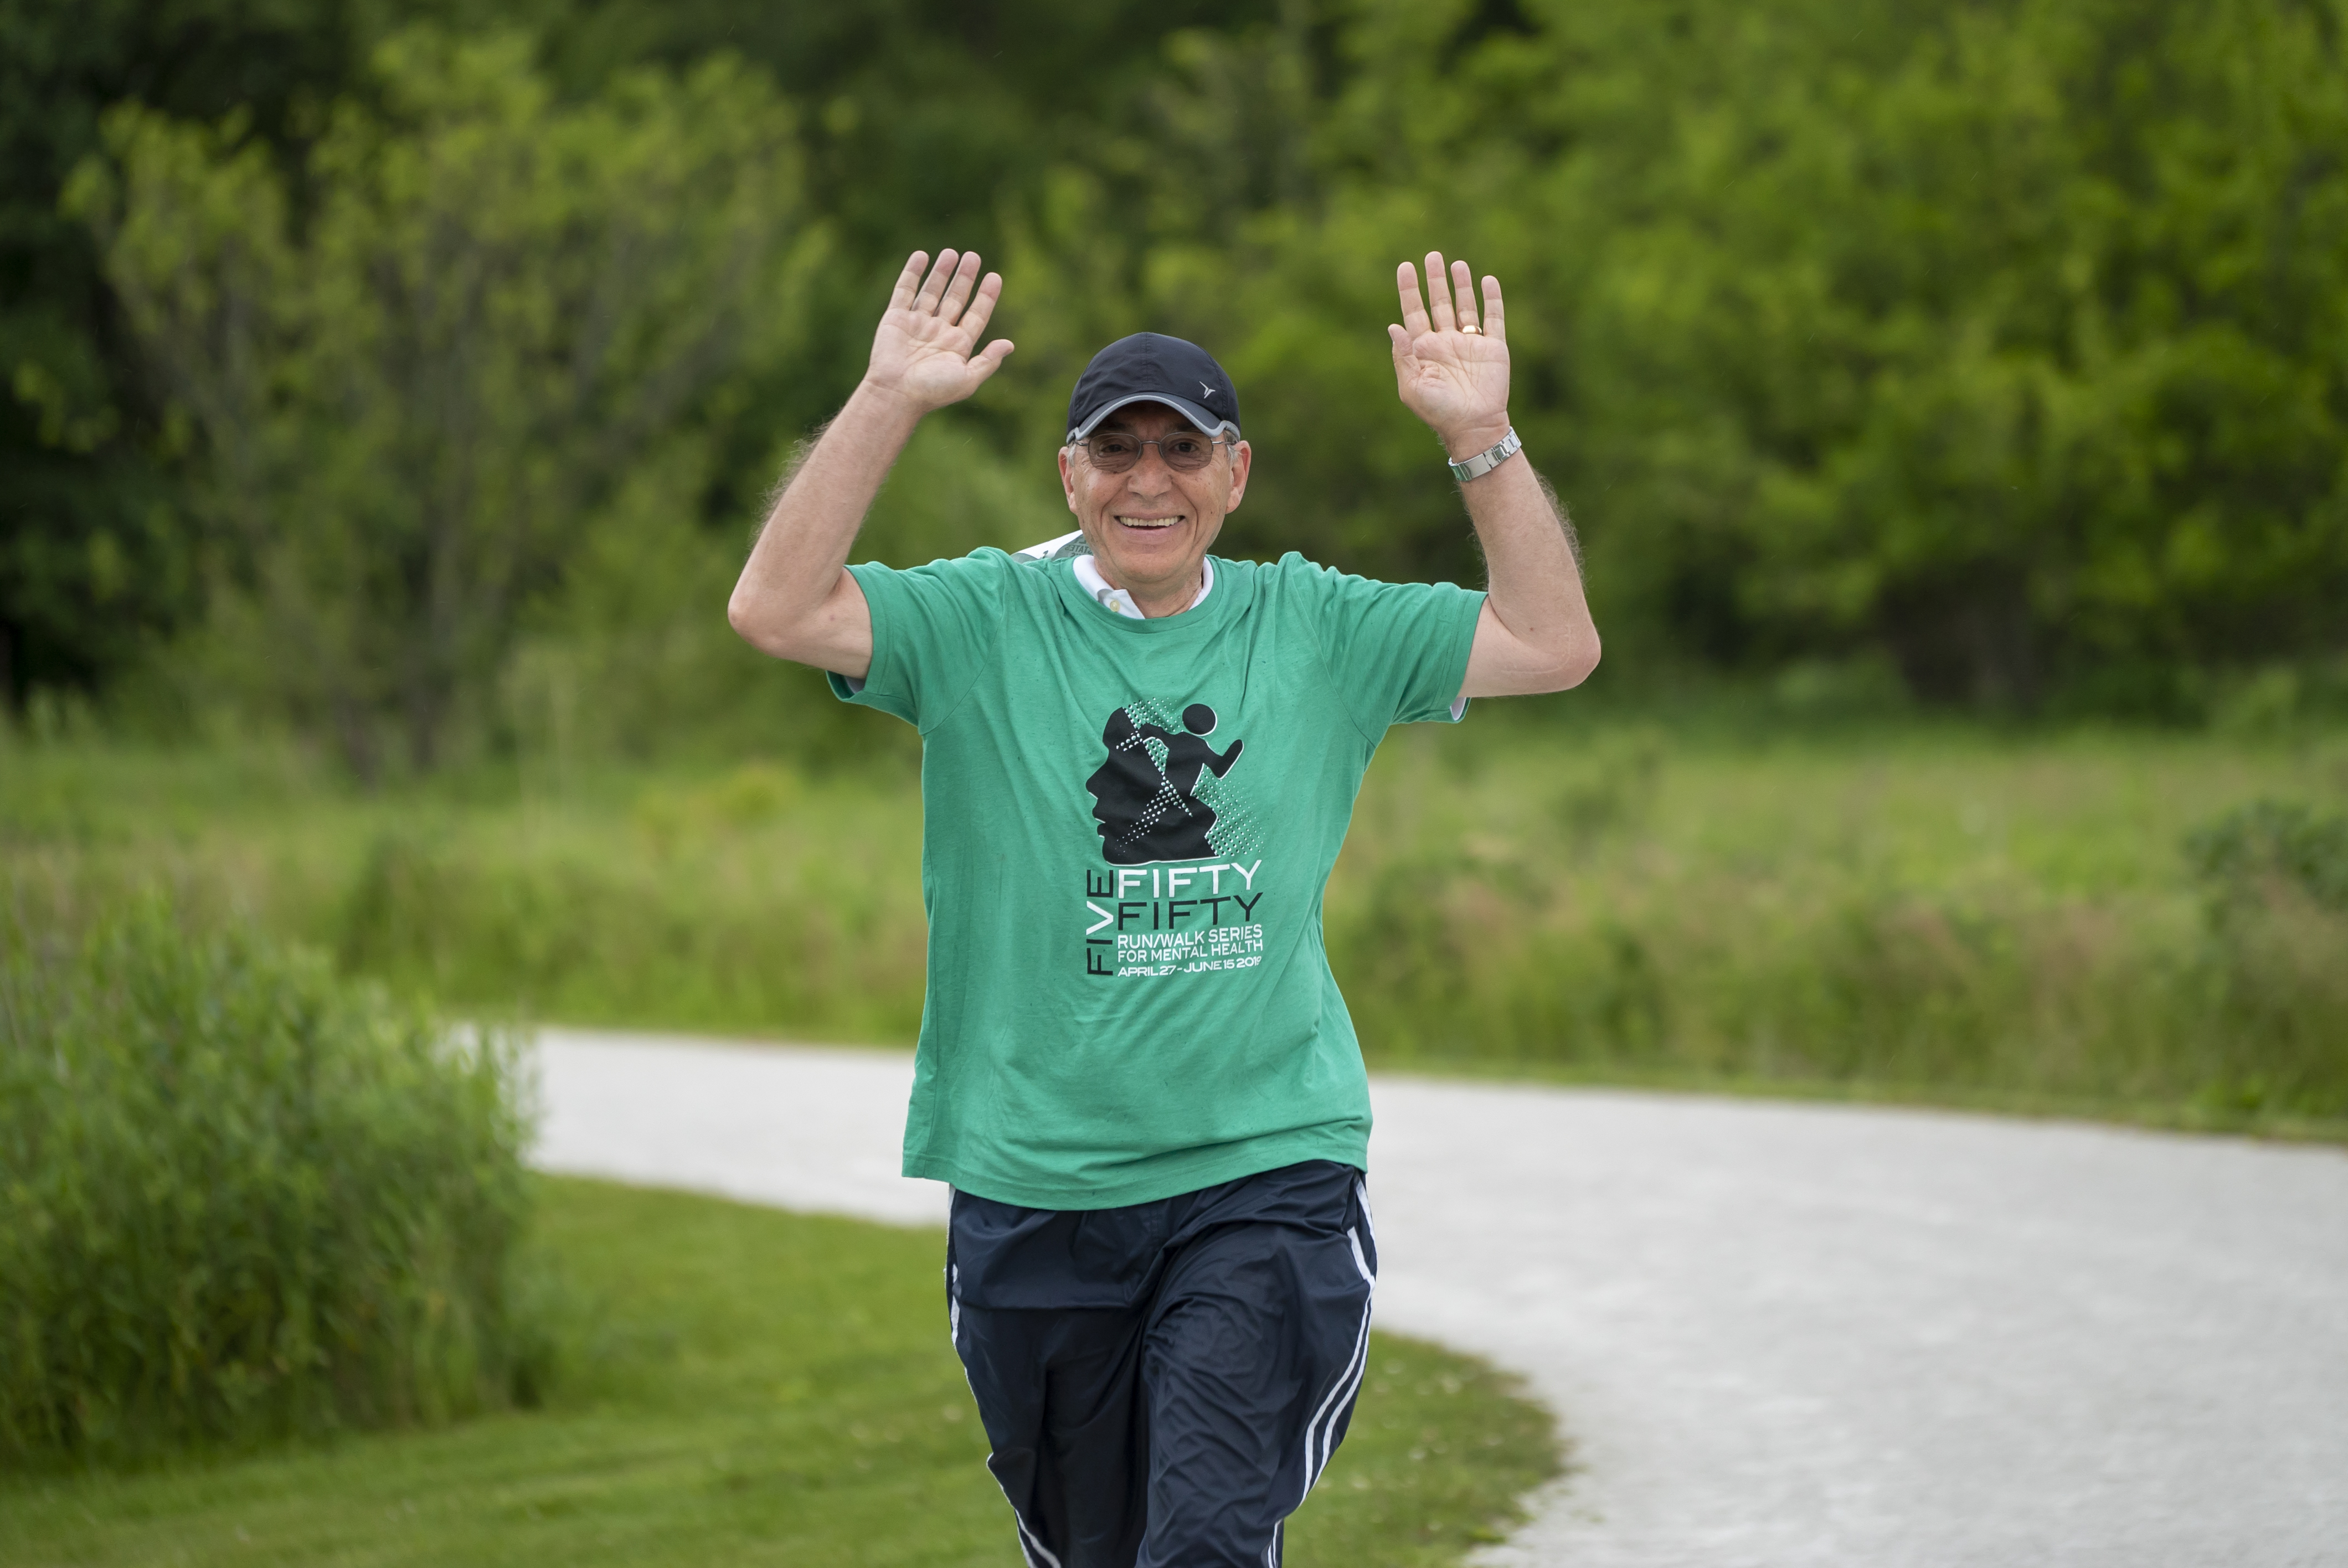 Man running in Five Fifty Fifty tee shirt